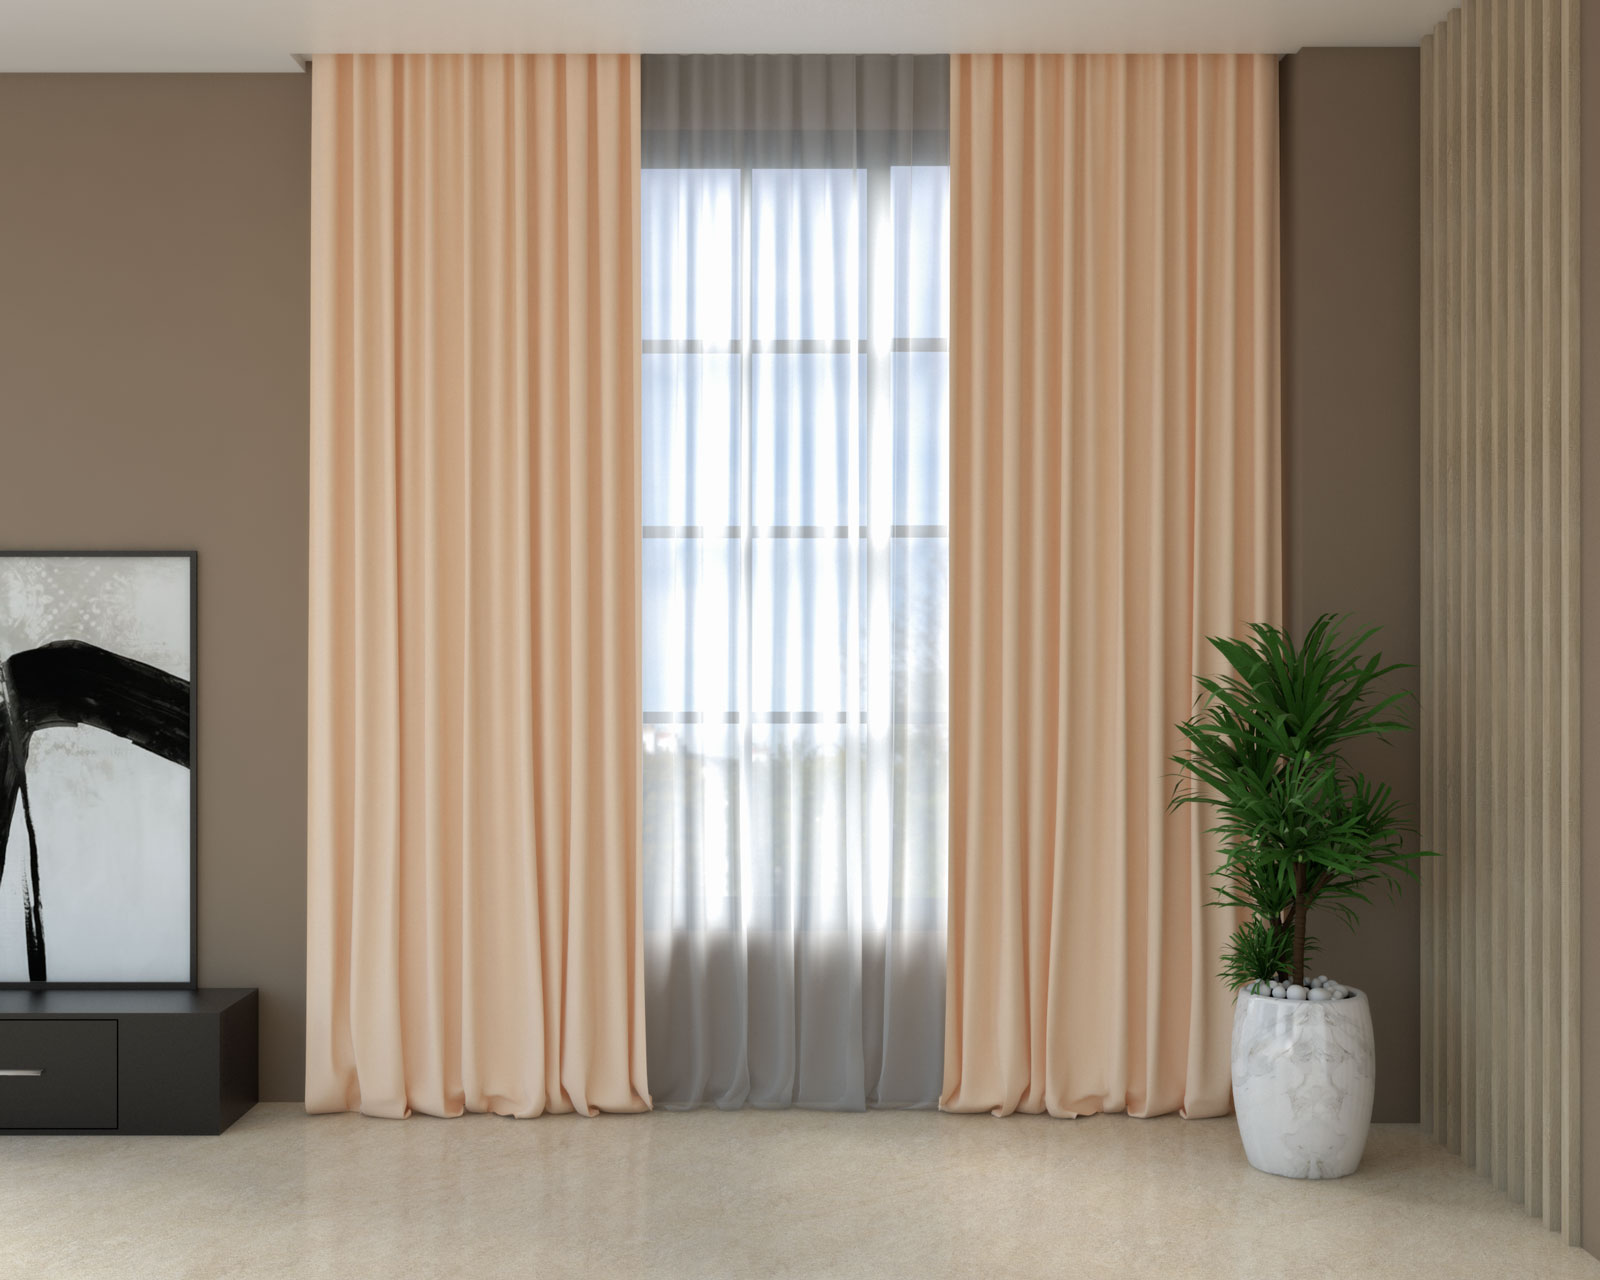 Peach curtains with brown walls